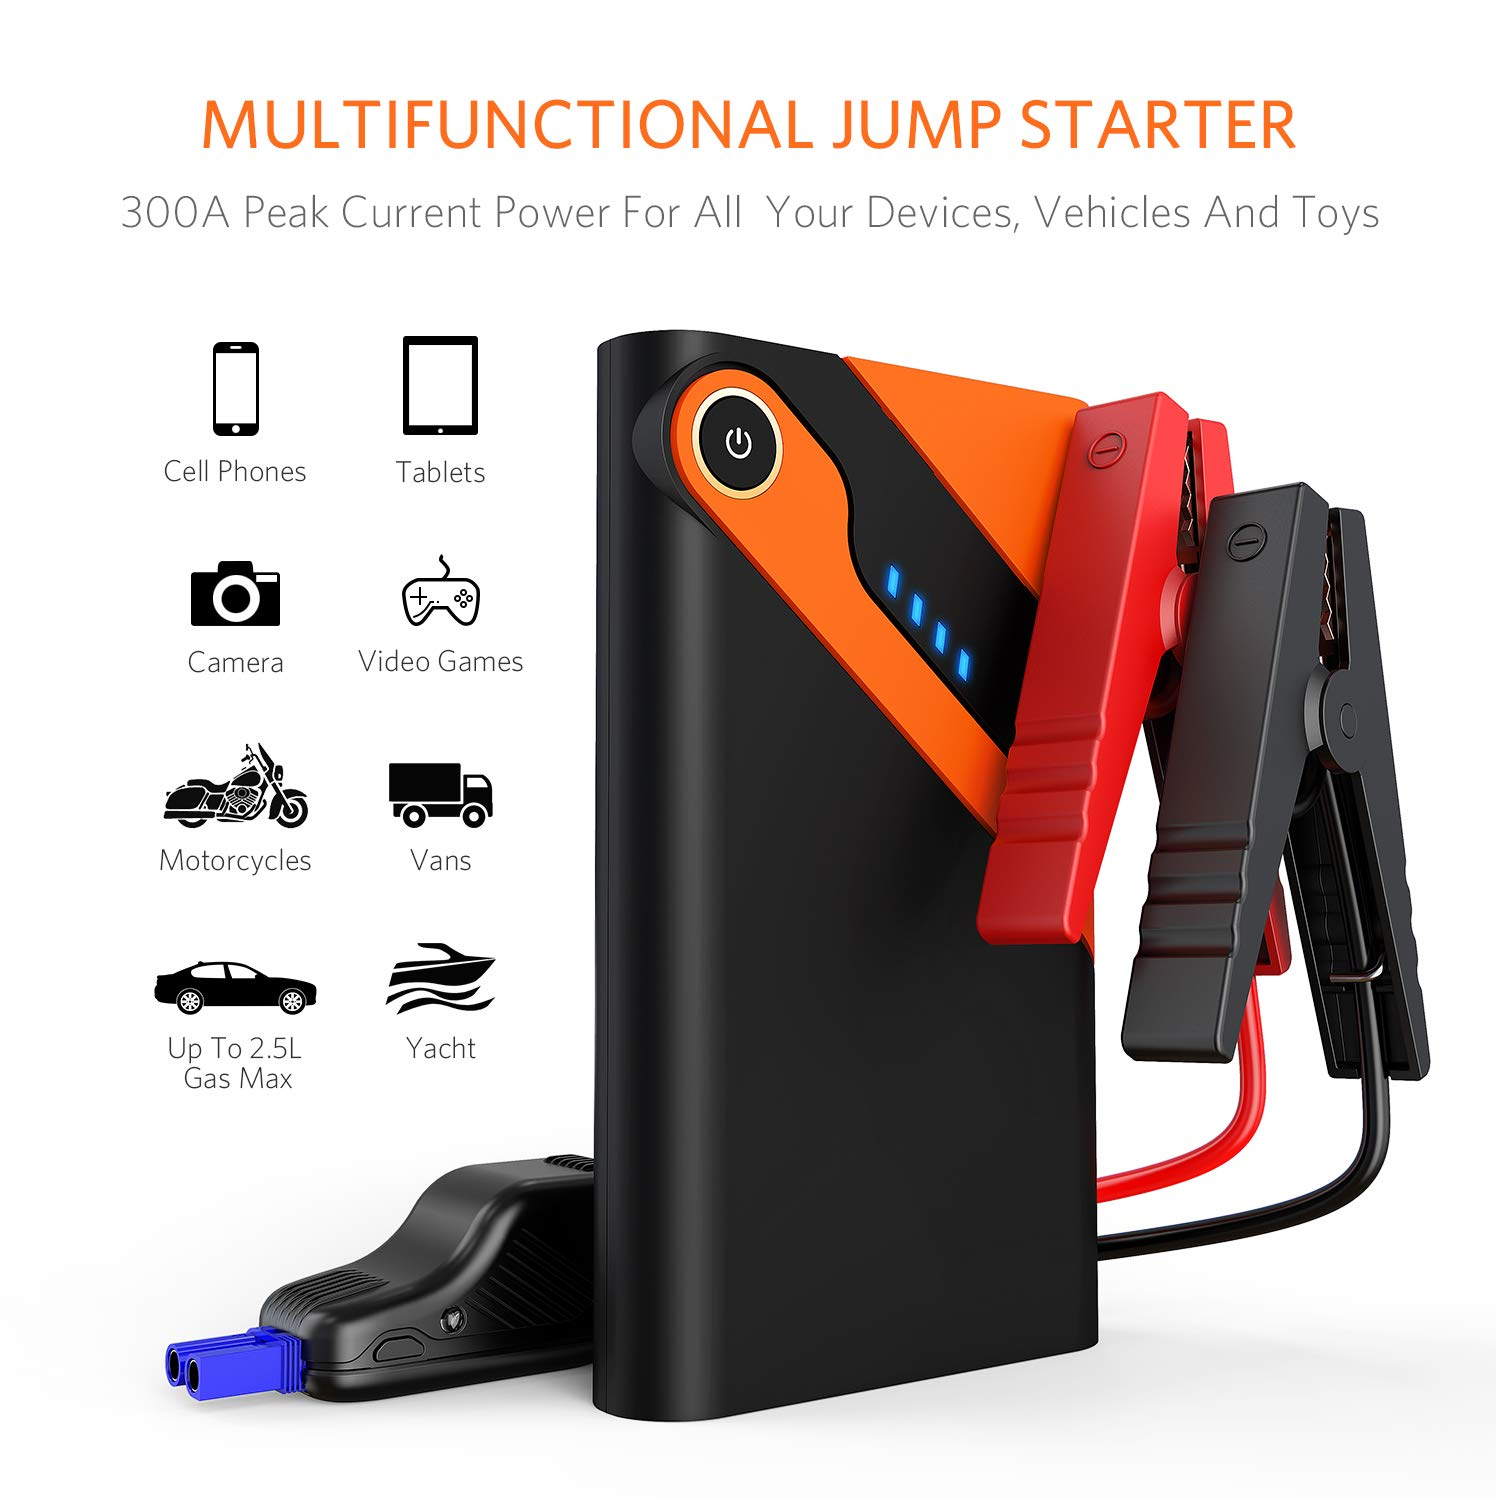 Car Jump Starter Auto Battery Charger and 8000mAh External Battery Charger Car Jumper for 12V Automotive, Motorcycle, Tractor, Boat, Phone with Clamps, LED Flashlight, 300A Peak 2.5L Gas Max by Alloyseed (Image #3)